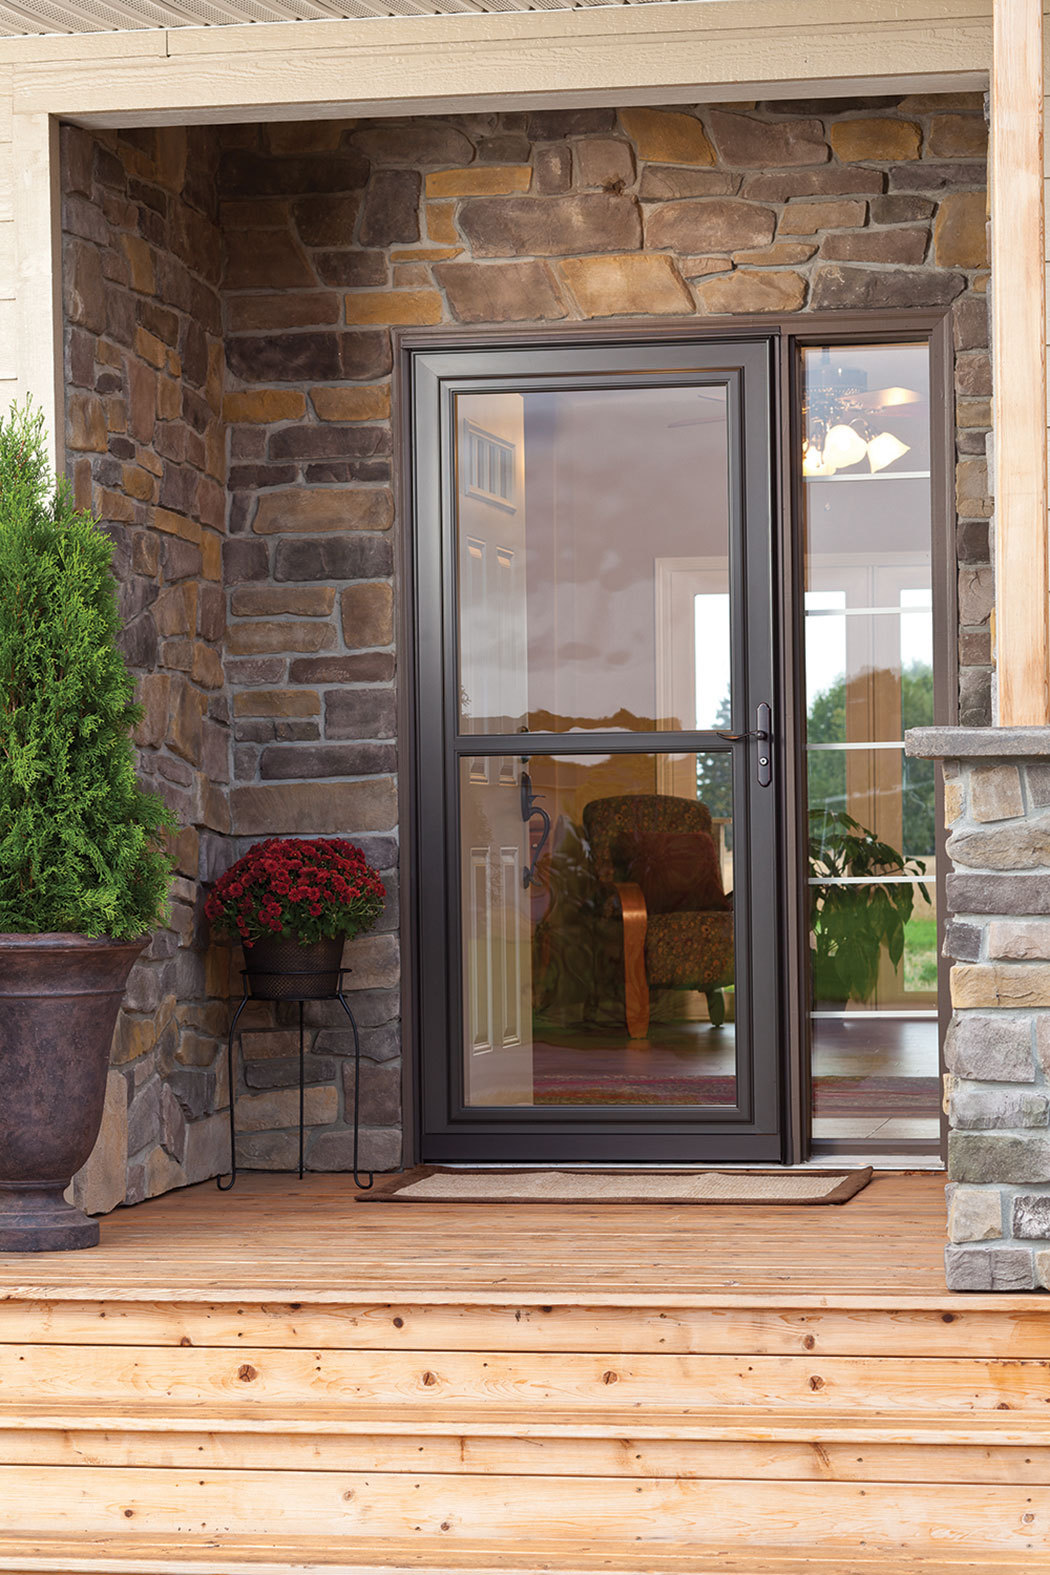 Waudena Millwork Announces Innovative Ready Install Program; Matches Fully-Prepped LARSON Storm Doors with Entry Doors to Save Time | Business Wire